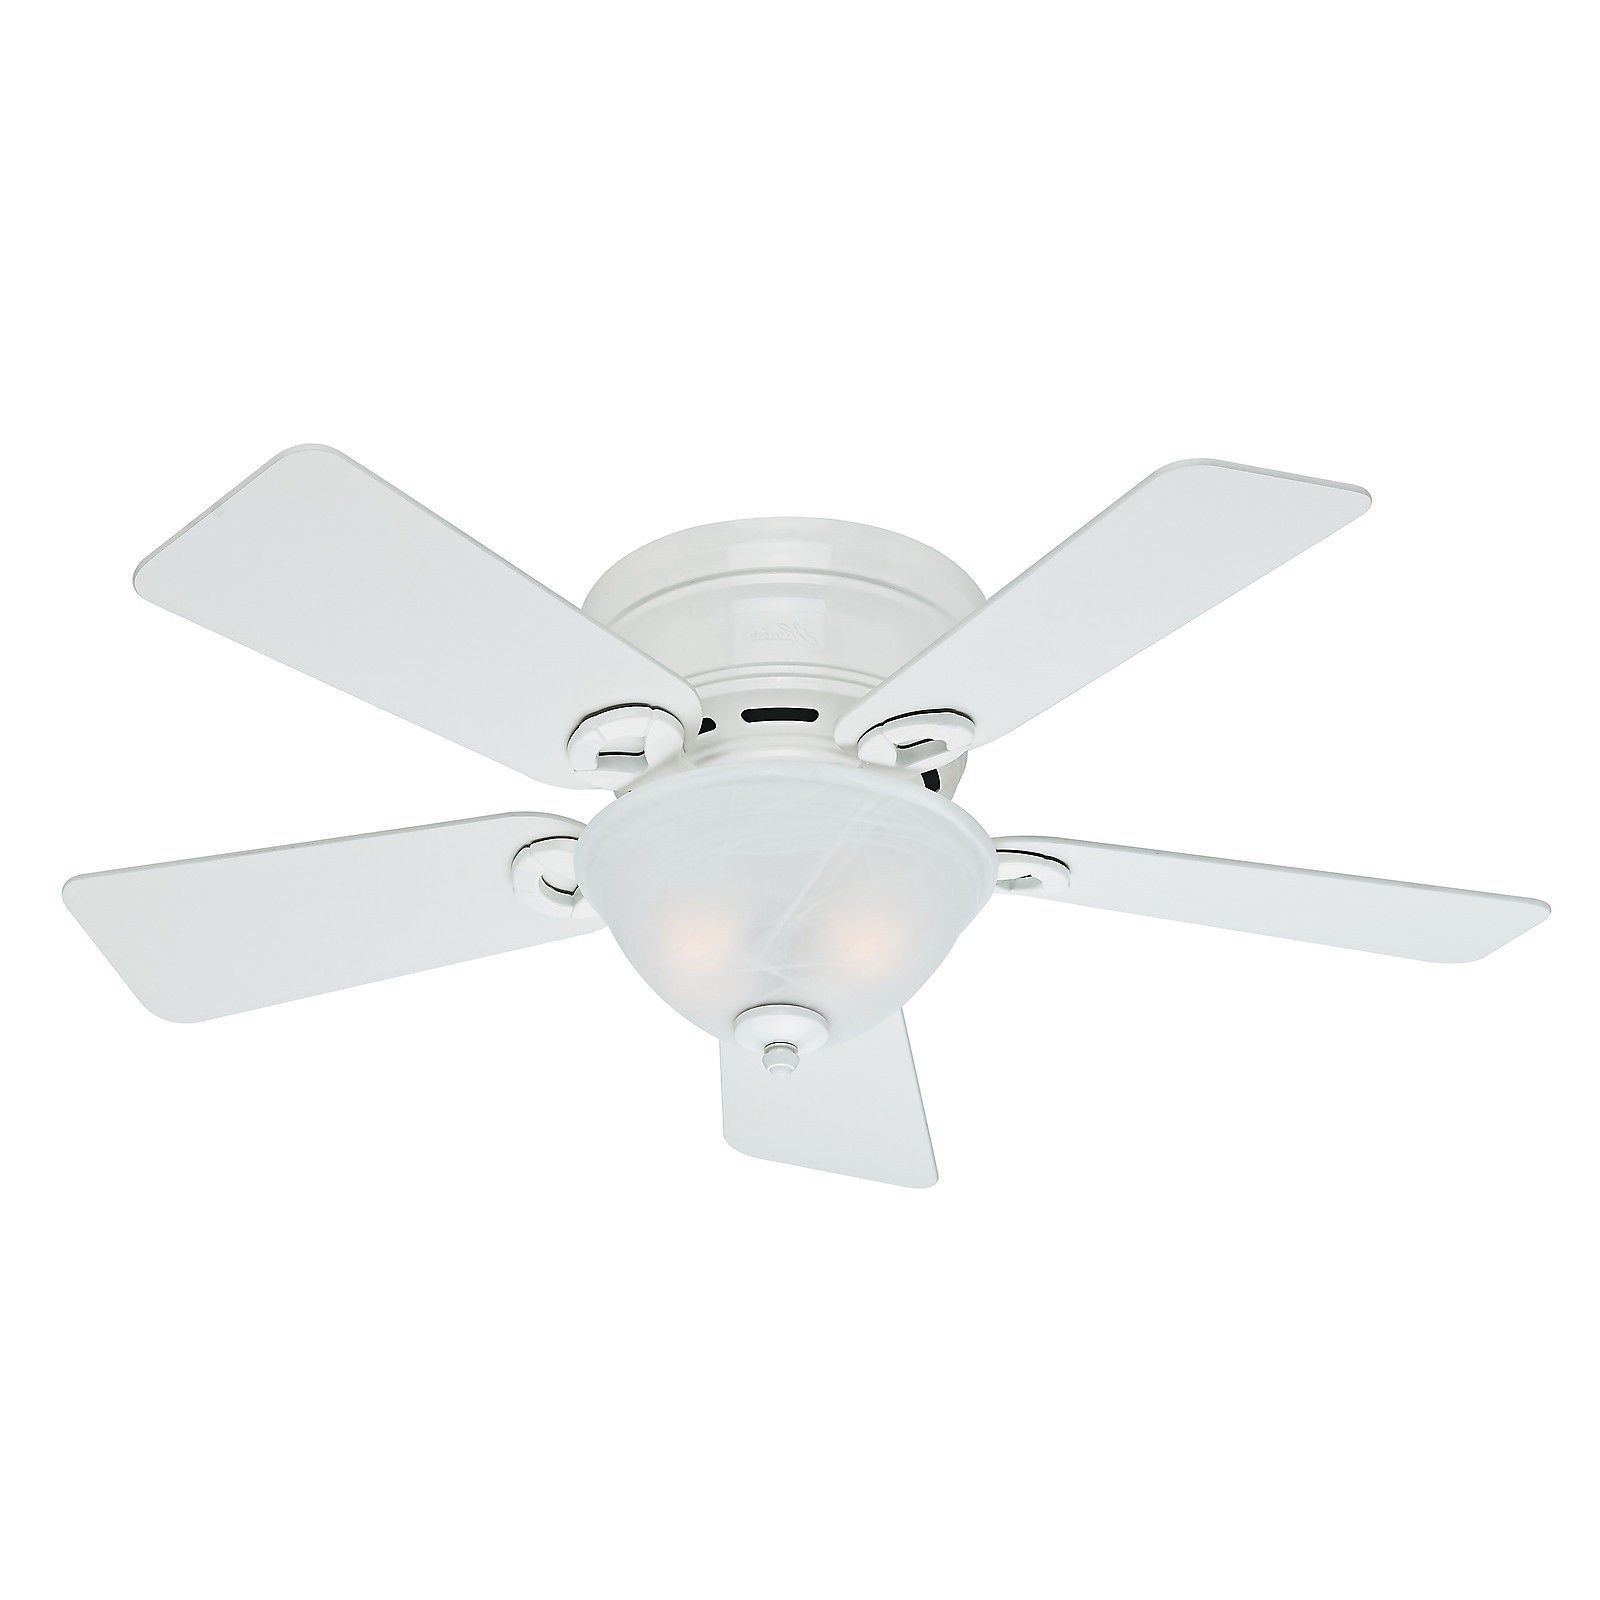 Low Profile Outdoor Ceiling Fans Low Profile Outdoor Ceiling Light For Most Recently Released Low Profile Outdoor Ceiling Fans With Lights (View 20 of 20)